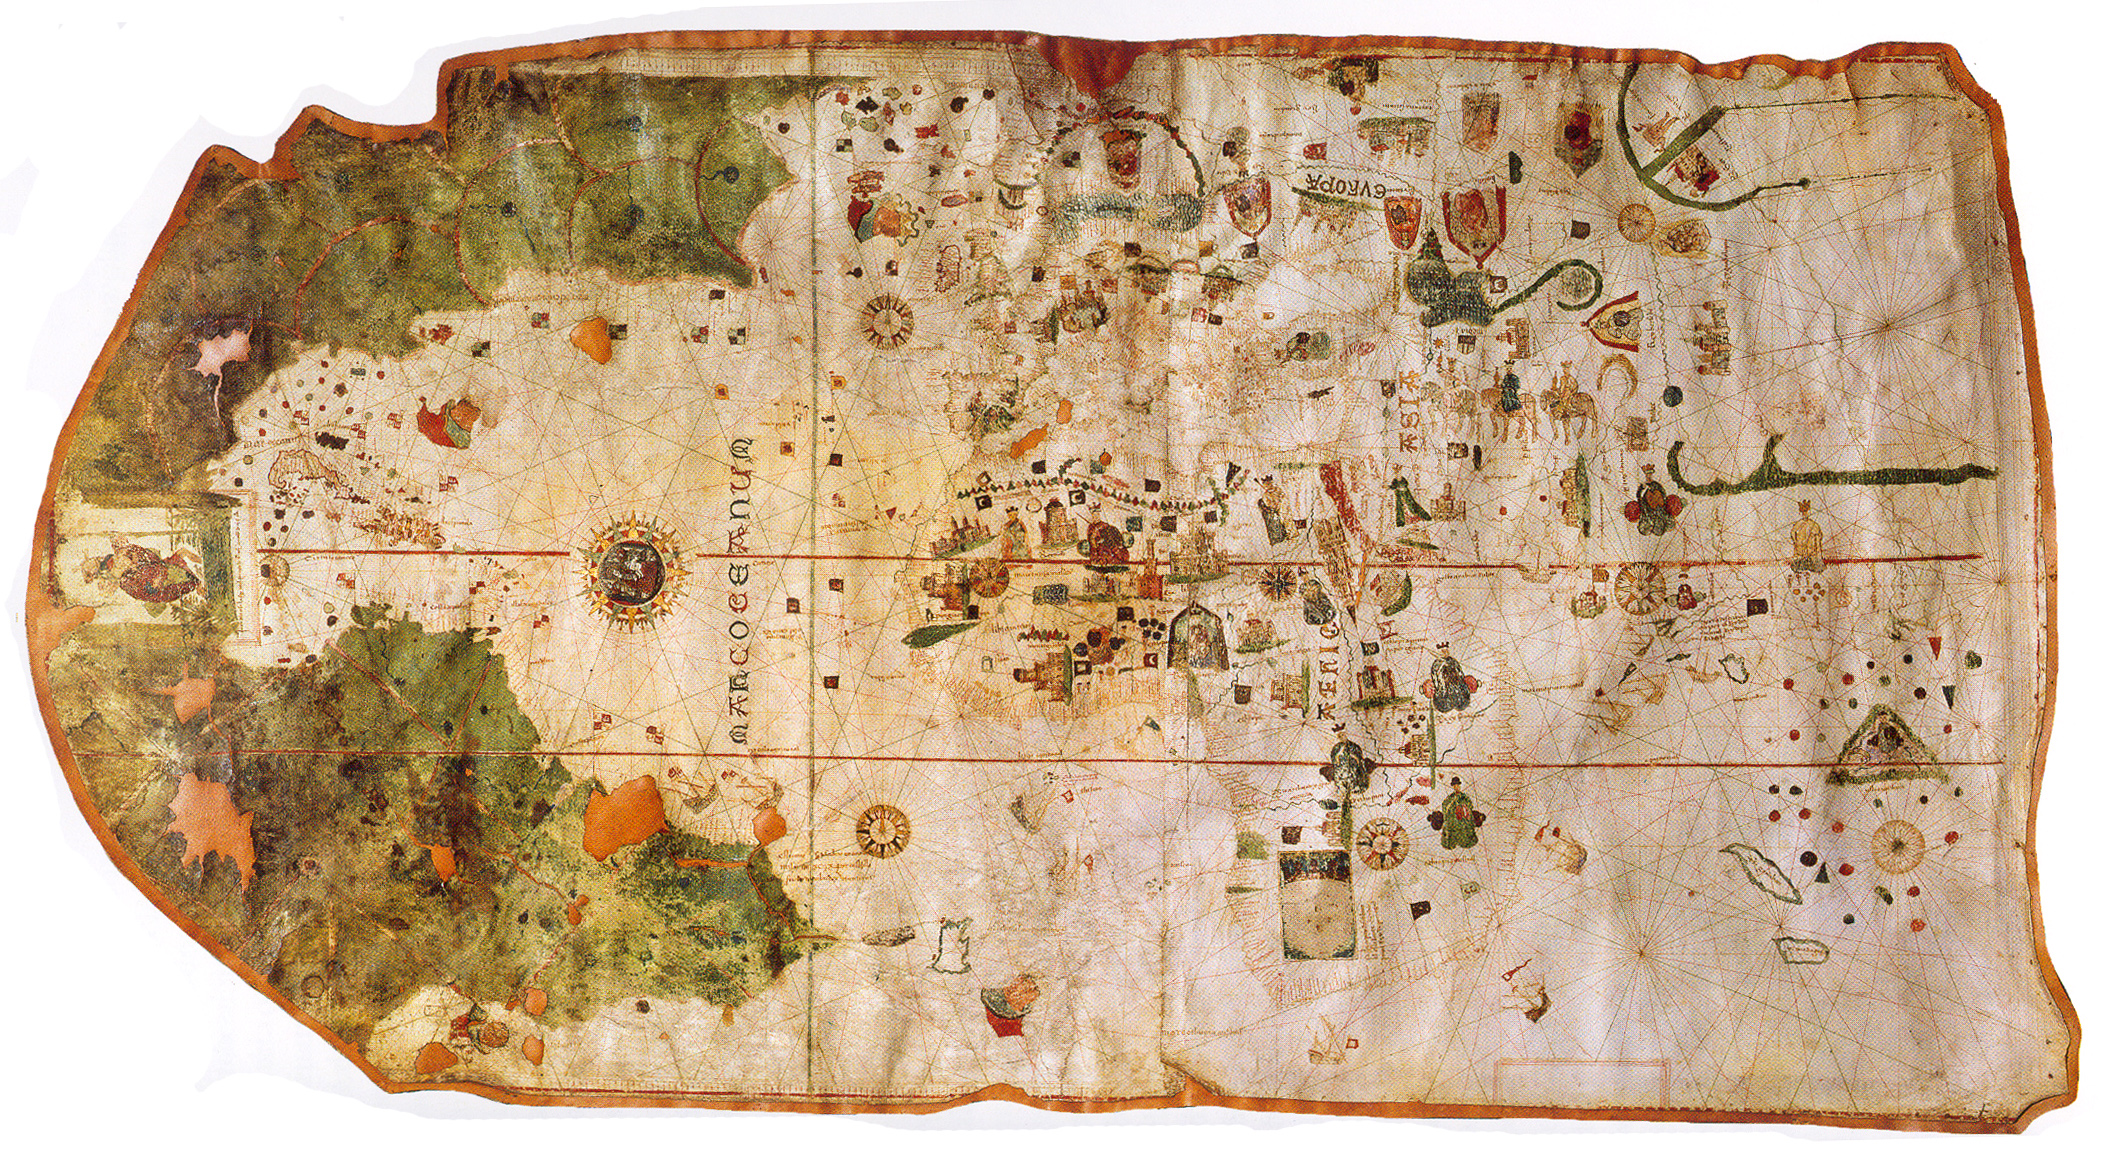 1500 map by Juan de la Cosa-North up